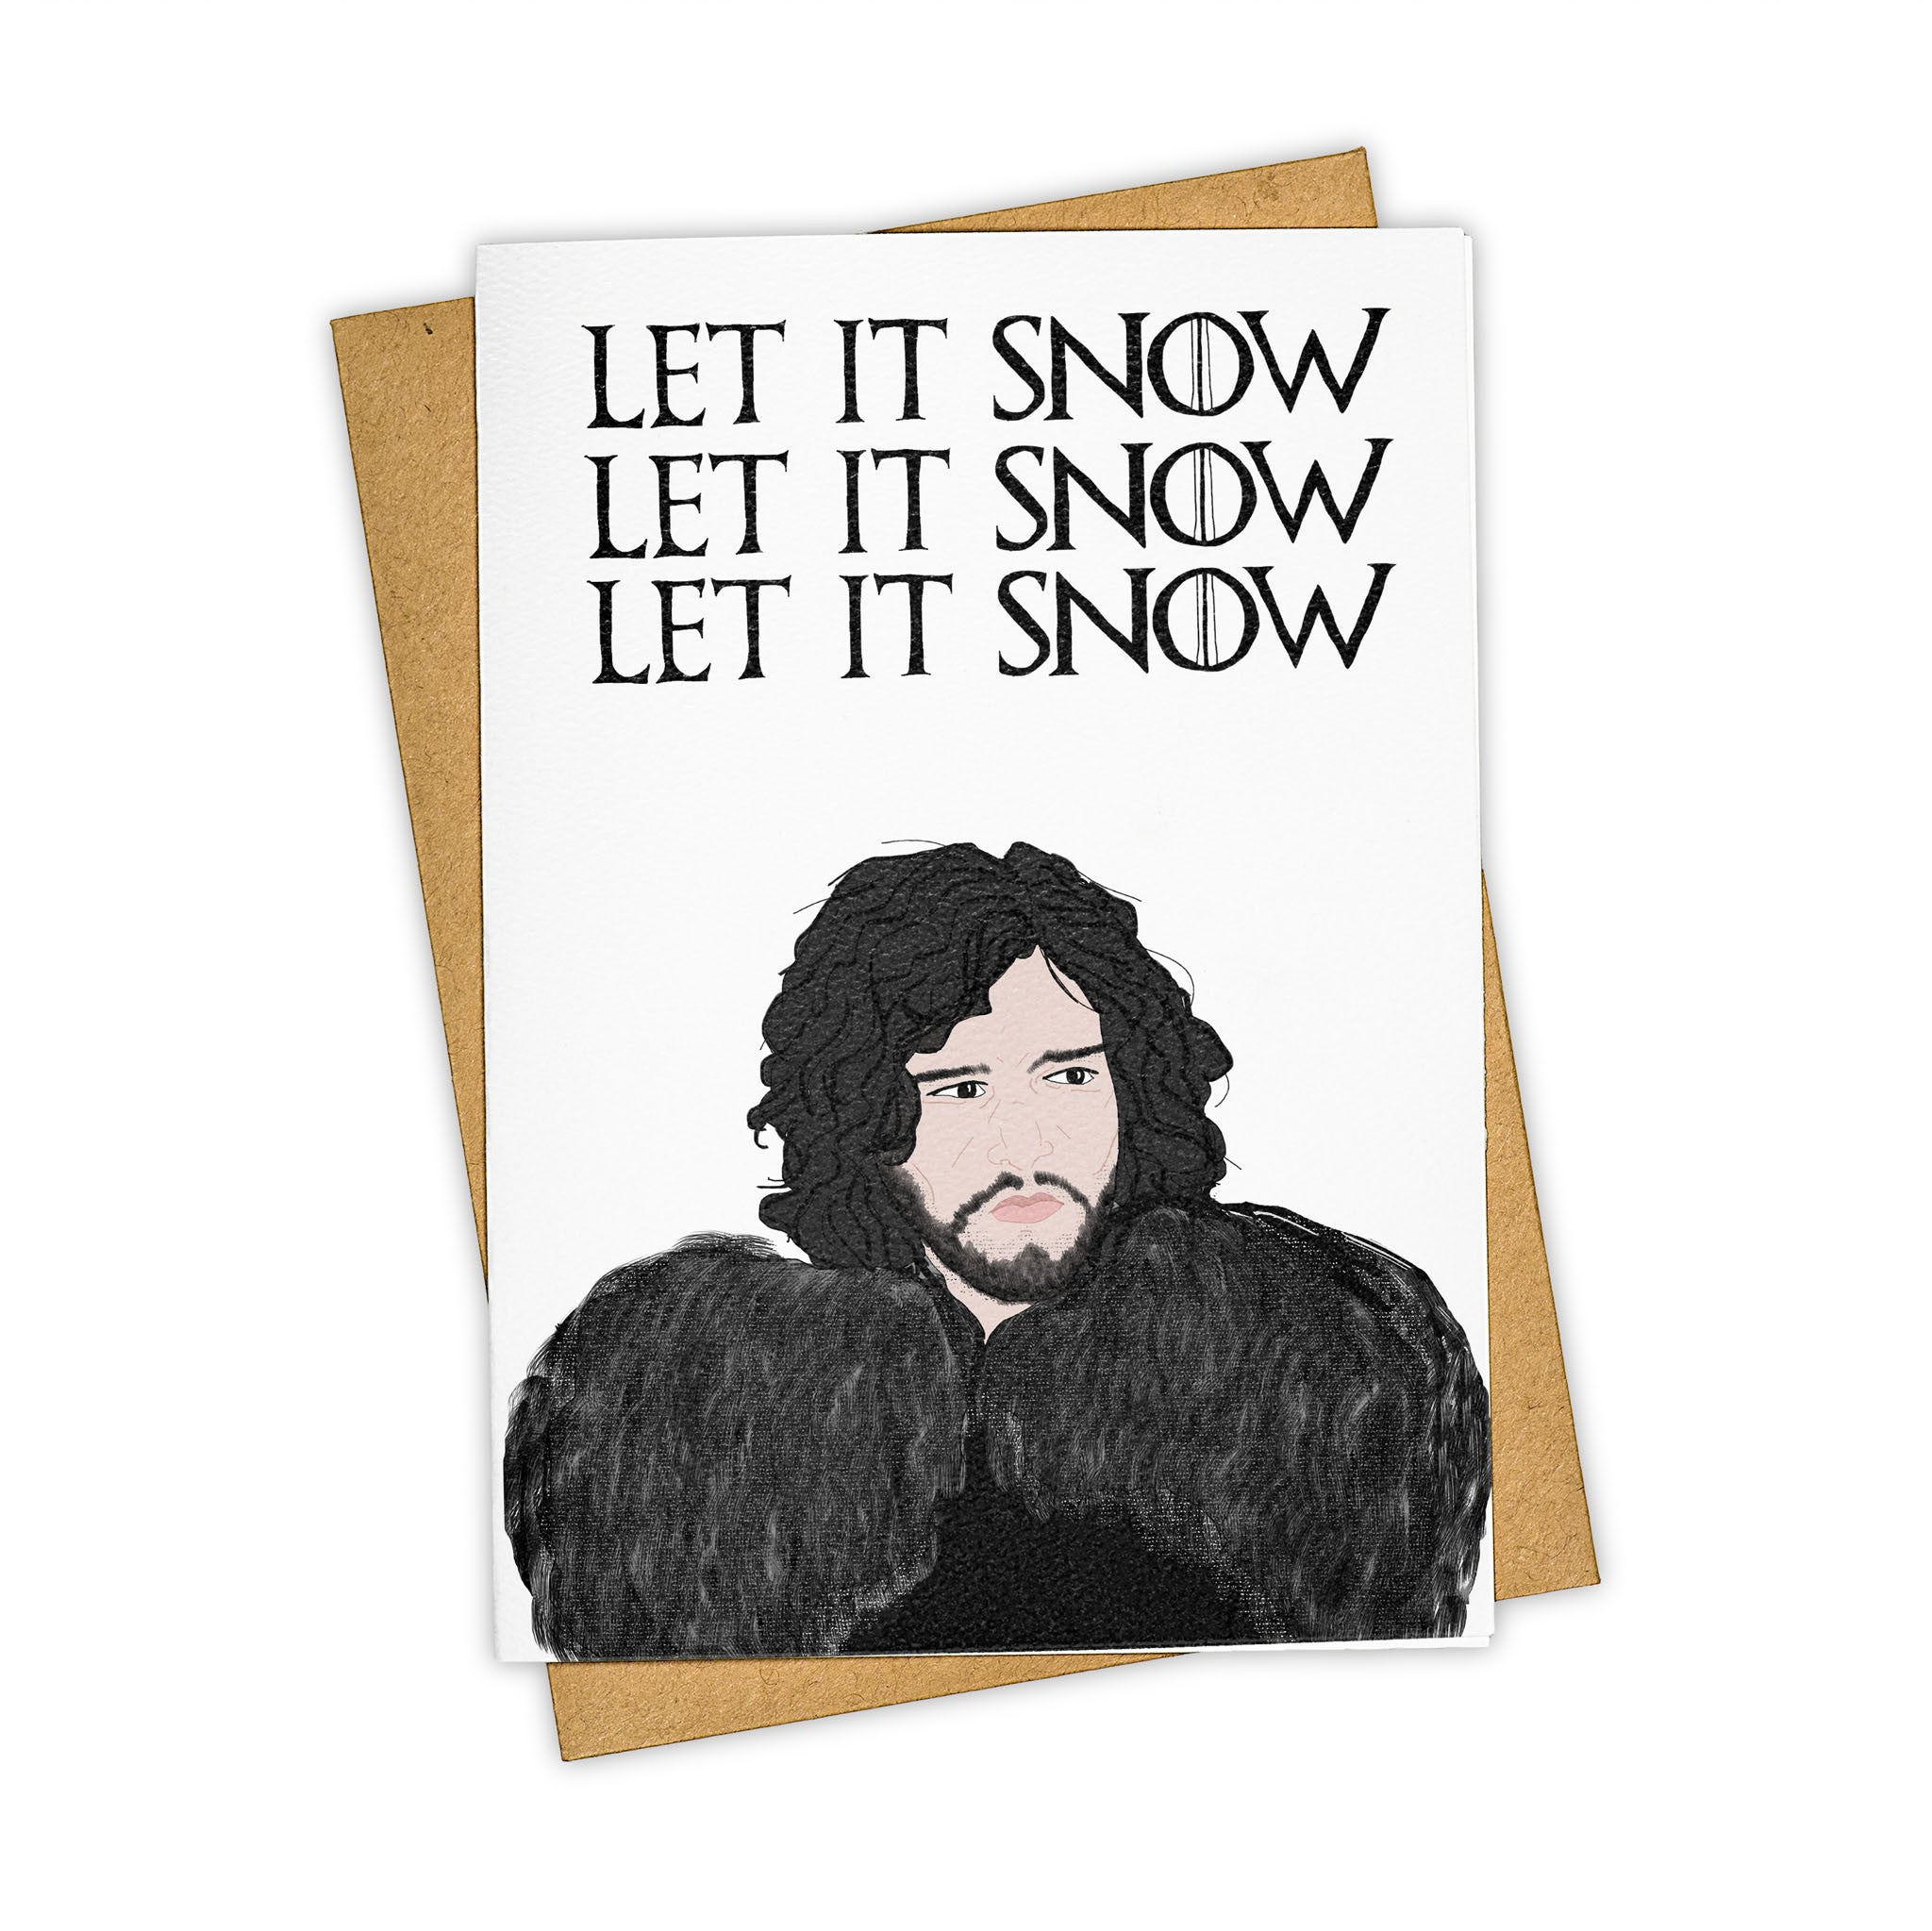 TAY HAM Game of Thrones Jon Snow Christmas Card